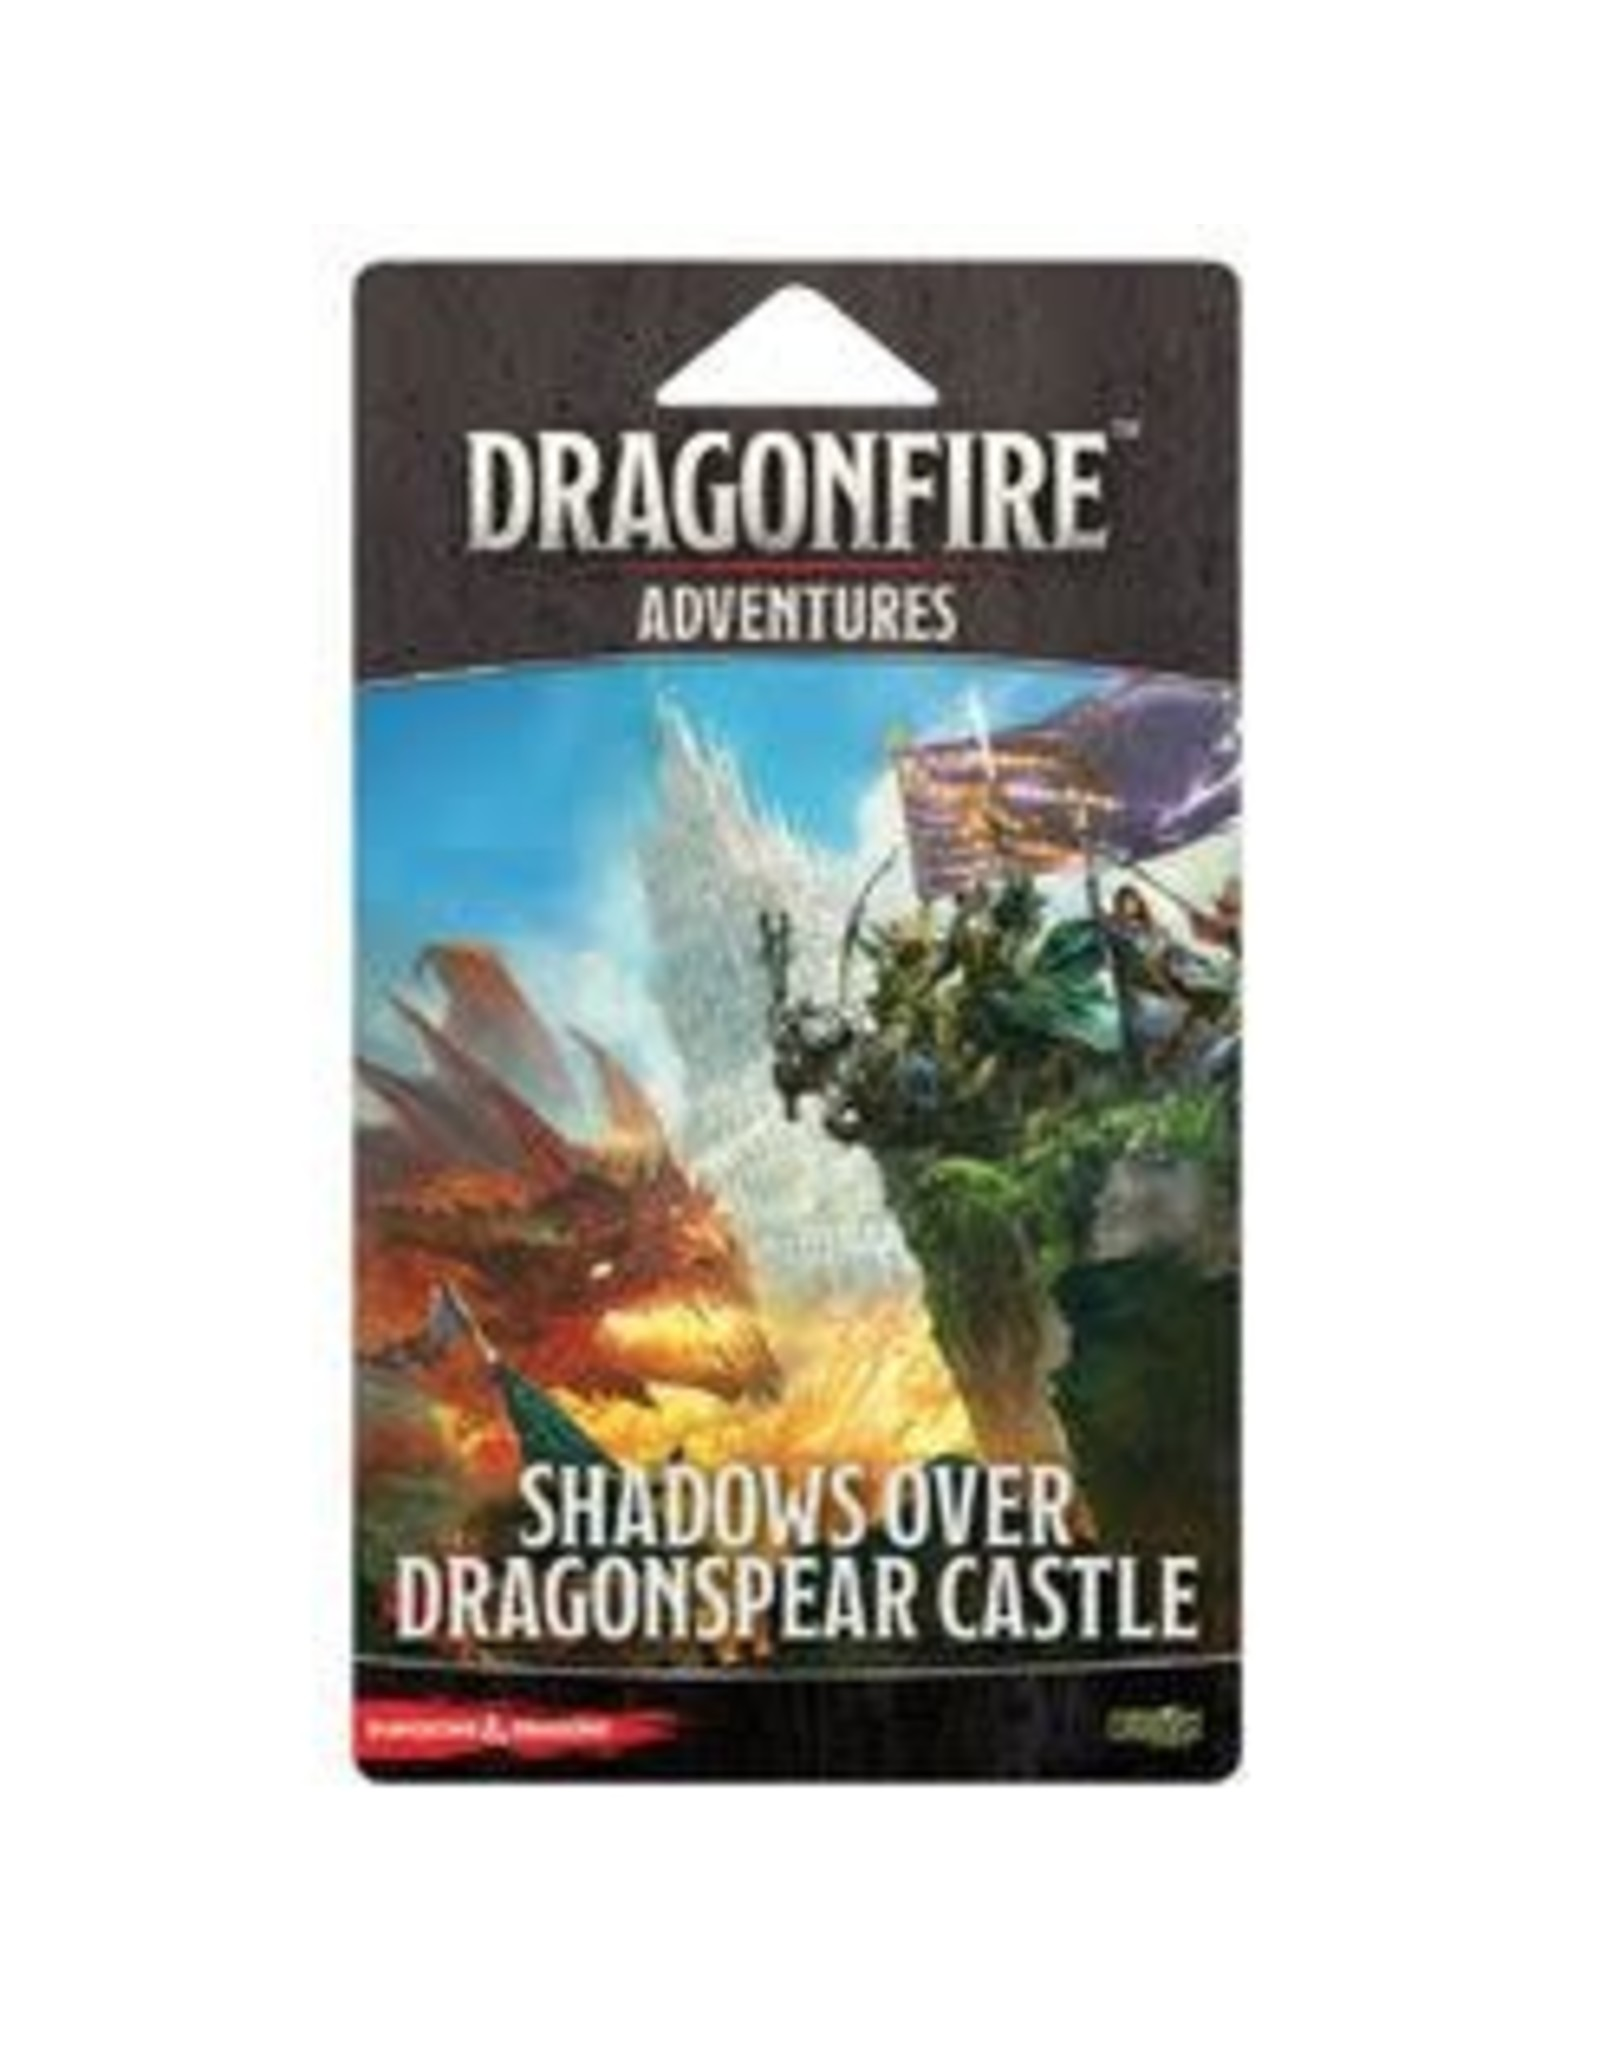 Dragonfire DBG Adventure: Shadows over Dragonspear Castle